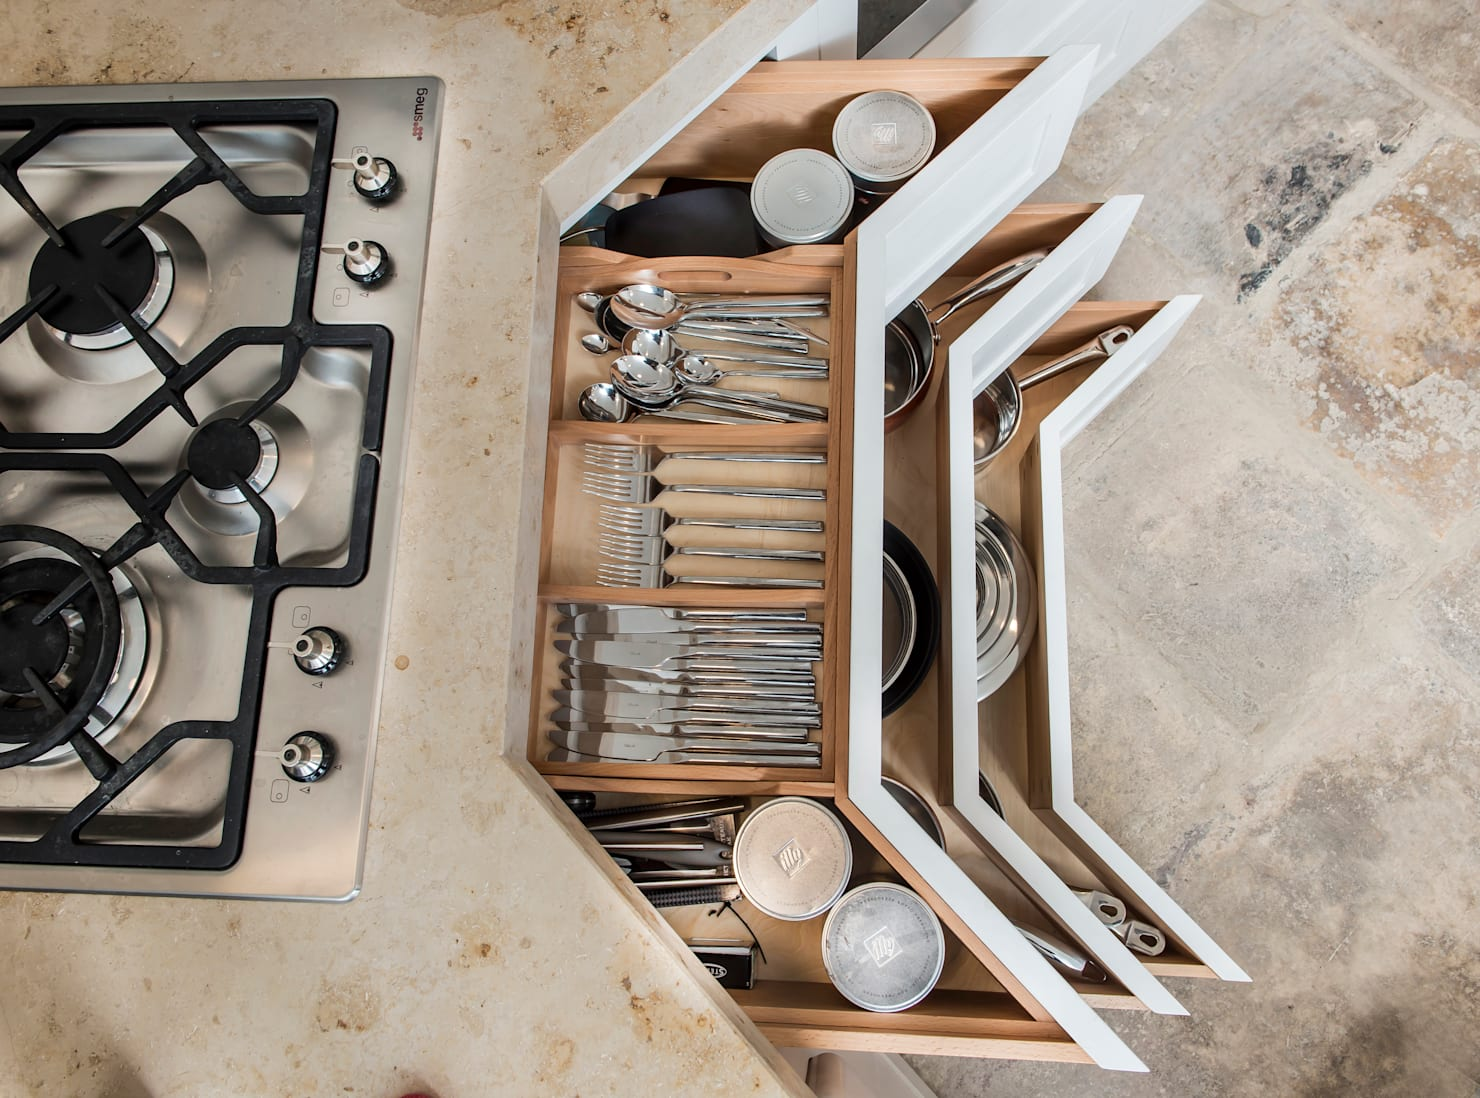 5 charming rustic kitchens that feature amazing storage solutions